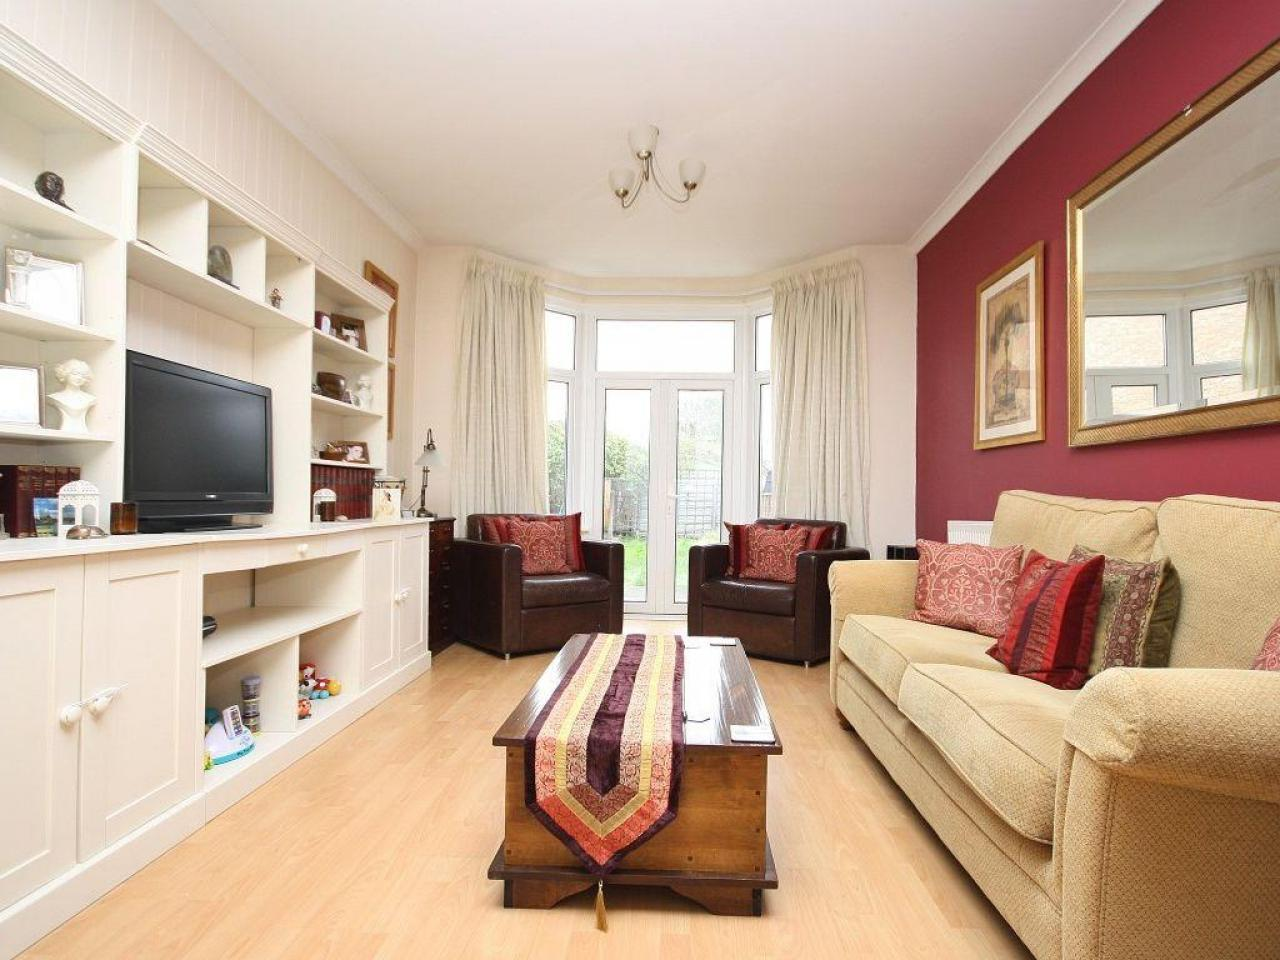 3/4 Bedroom House Isleworth - 3